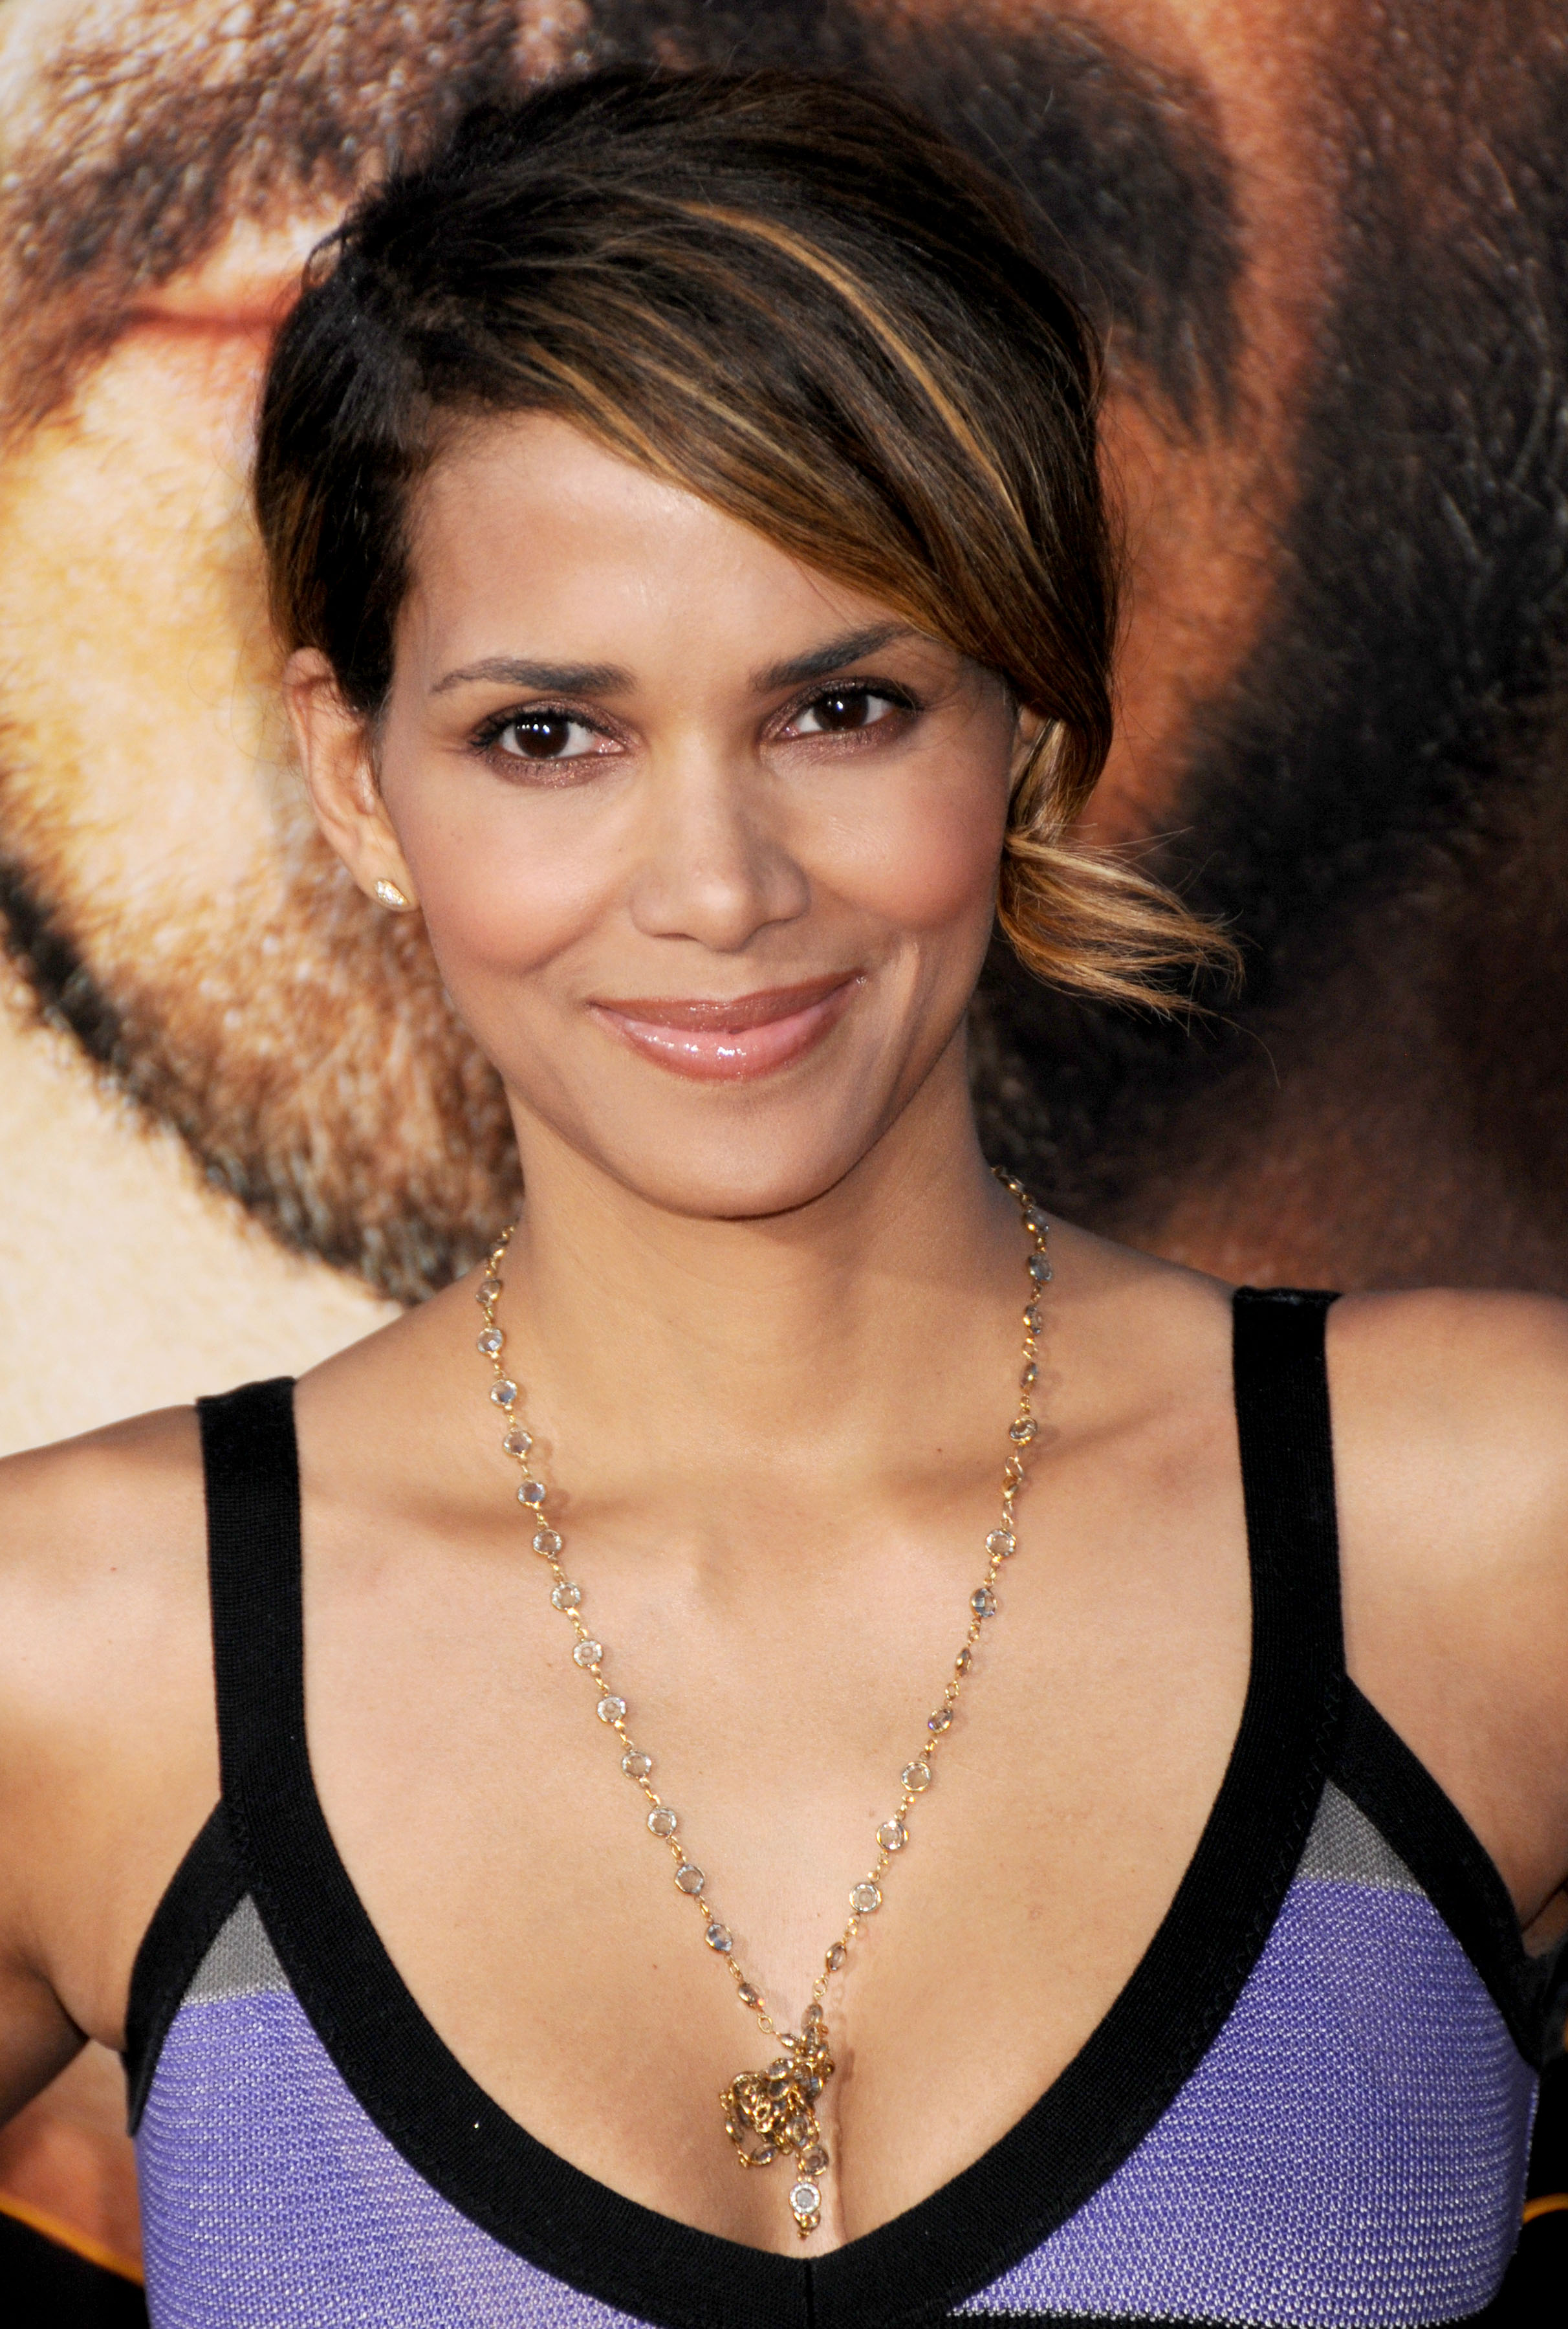 66438_Halle_Berry_The_Soloist_premiere_in_Los_Angeles_85_122_474lo.jpg